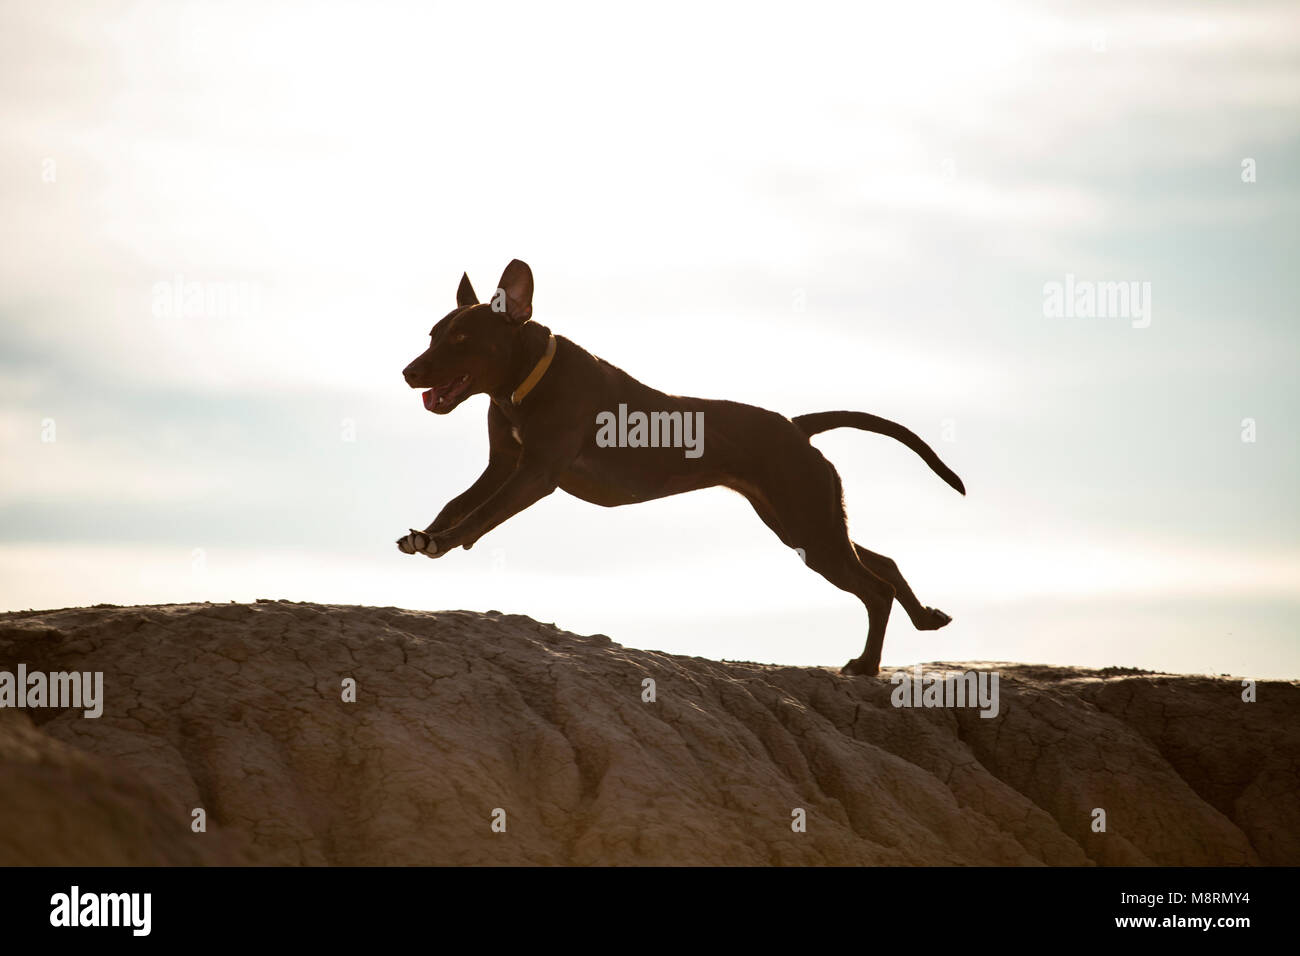 Dog running on rock against sky during sunny day - Stock Image